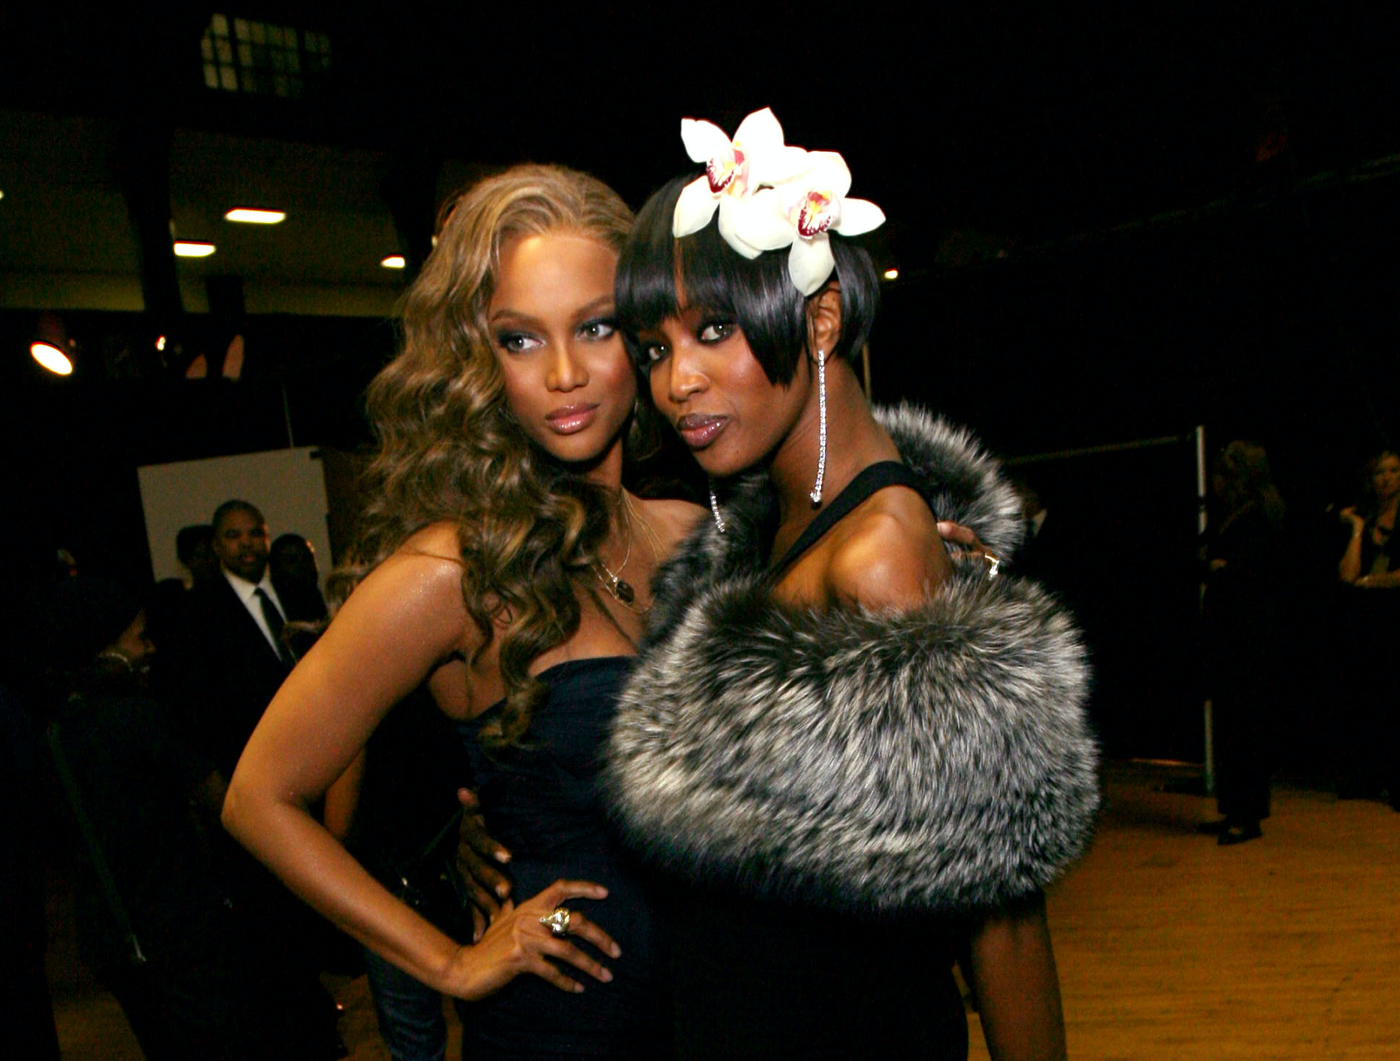 A photo of Tyra Banks and Naomi Campbell posing together for the camera.